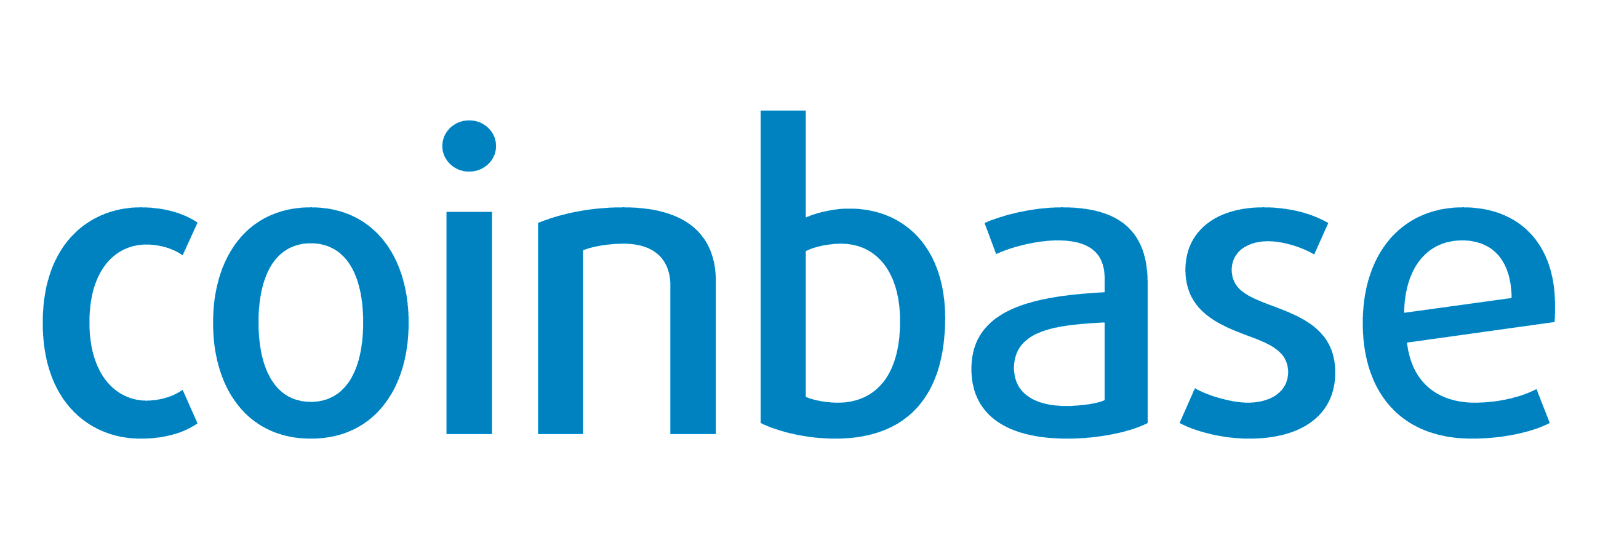 Coinbase cryptocurrency exchange logo